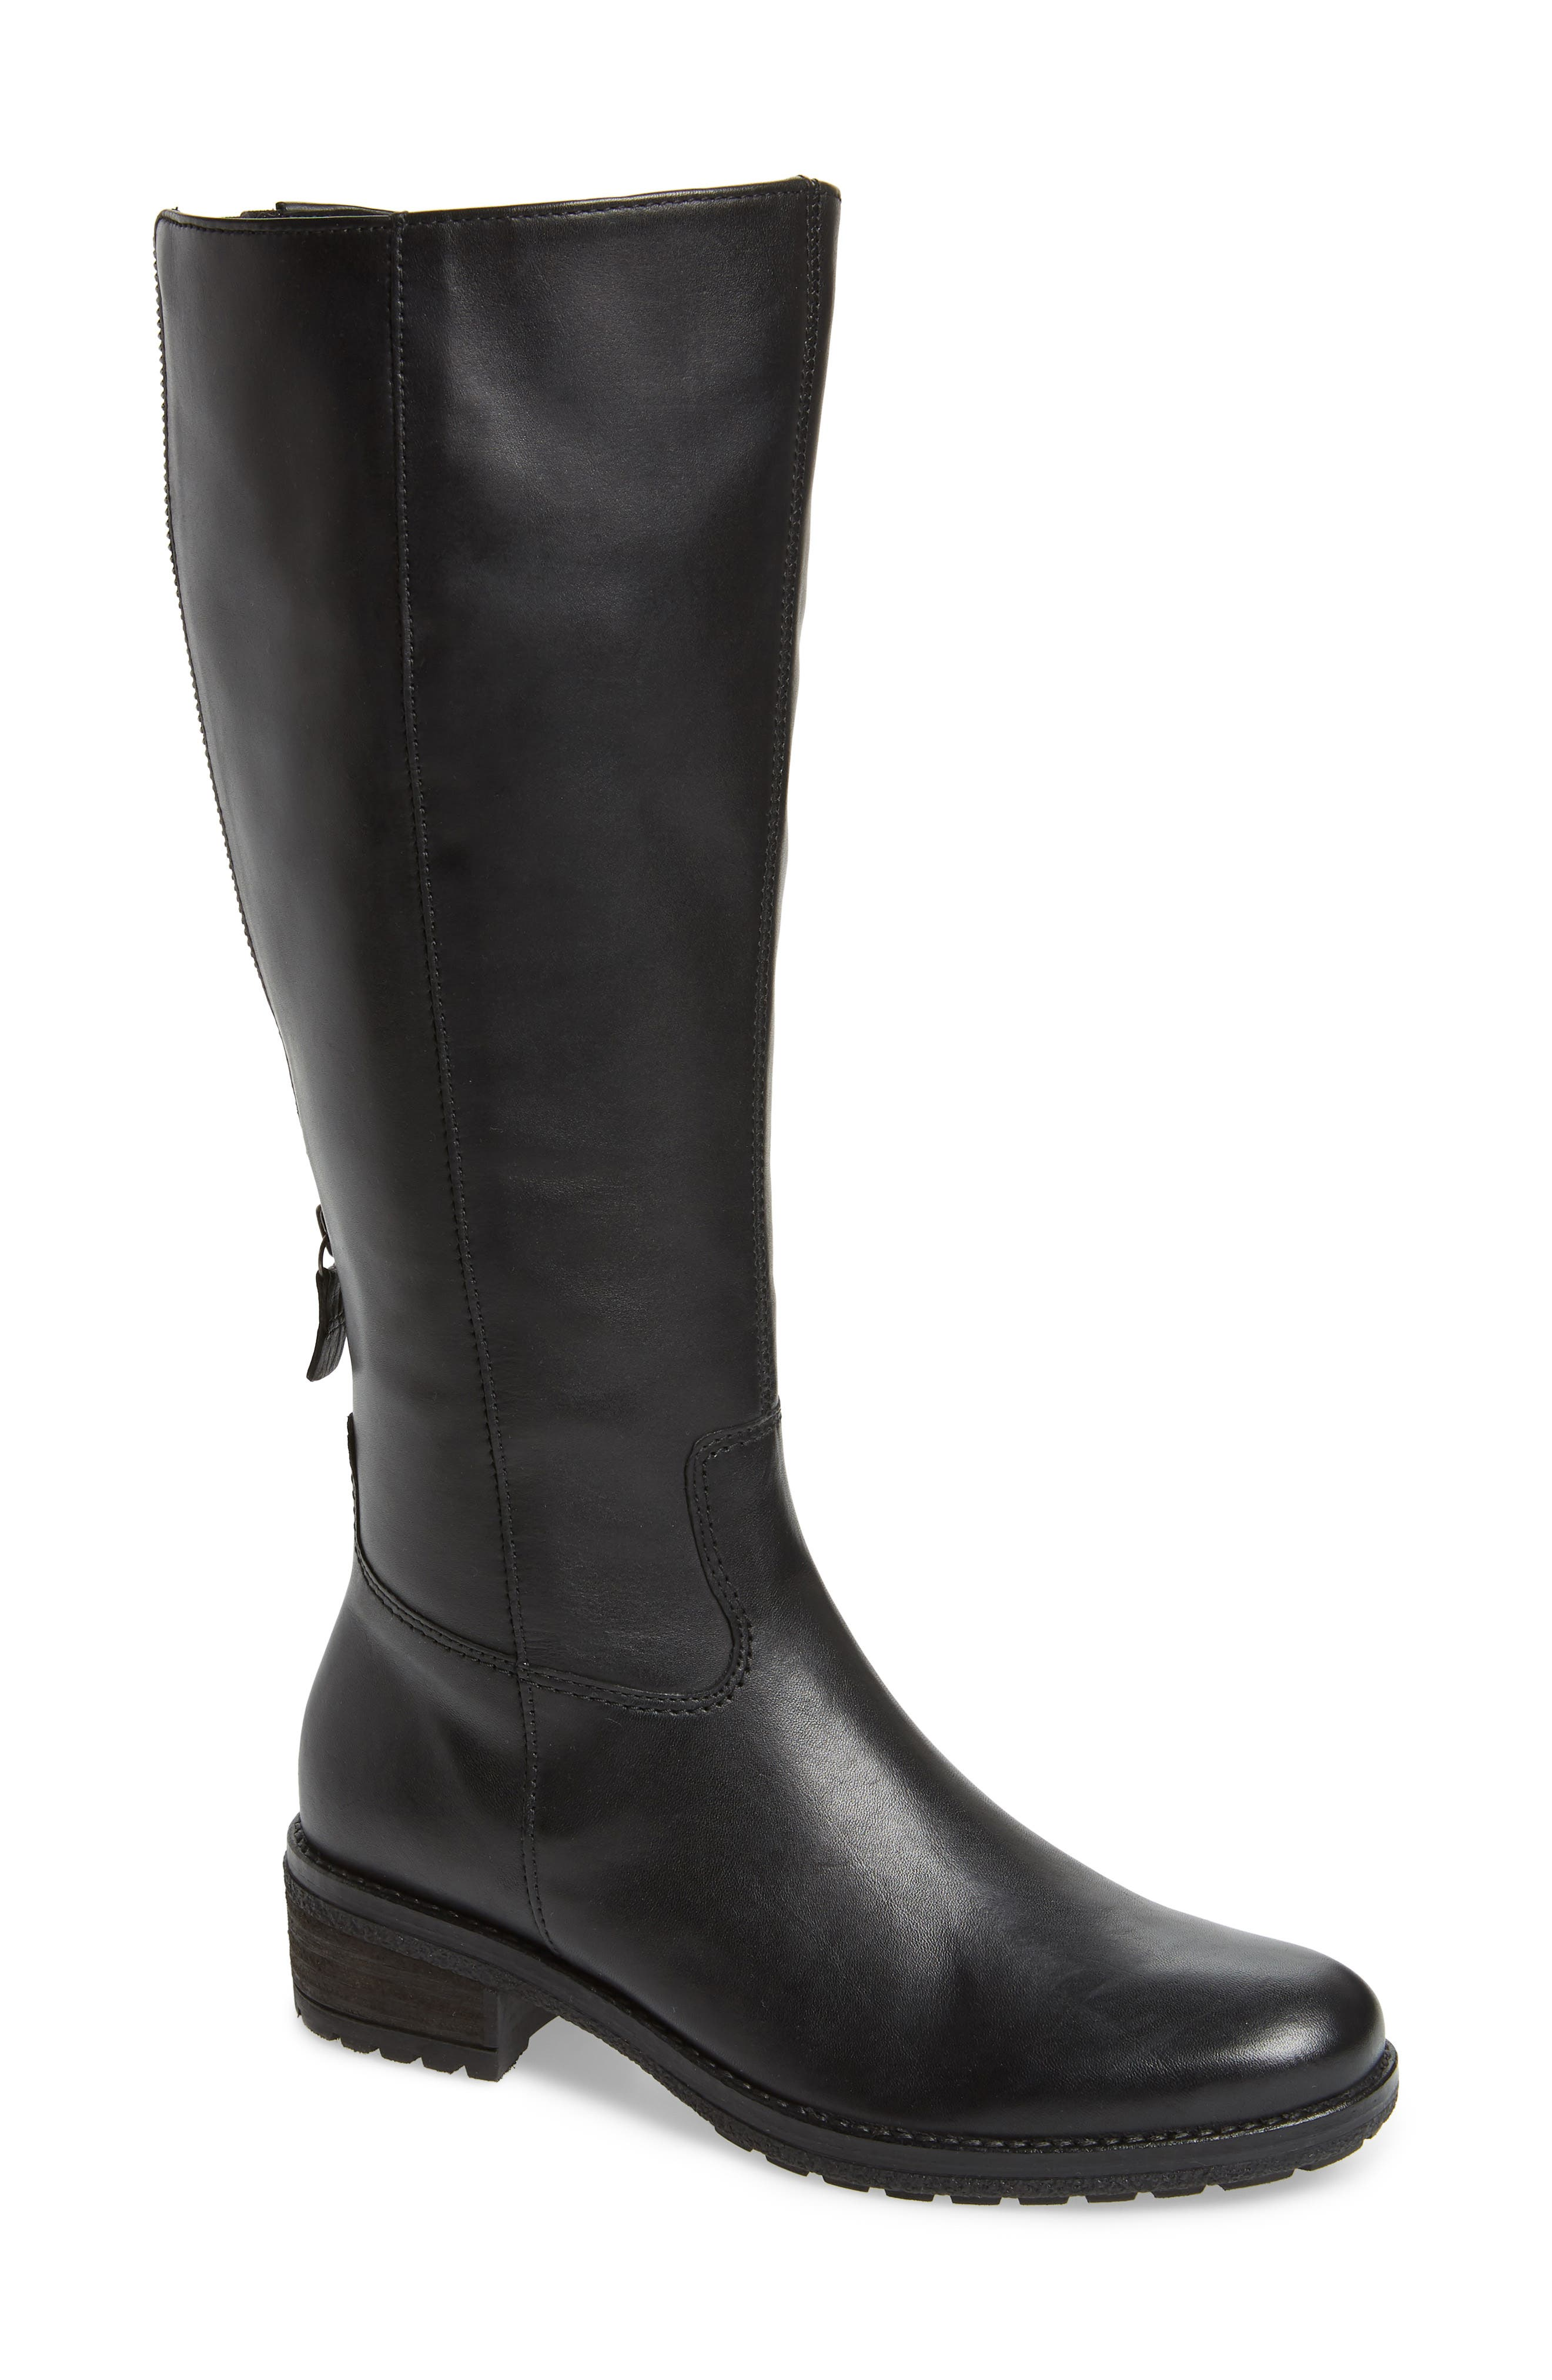 GABOR Classic Comfort Knee High Riding Boot, Main, color, BLACK LEATHER